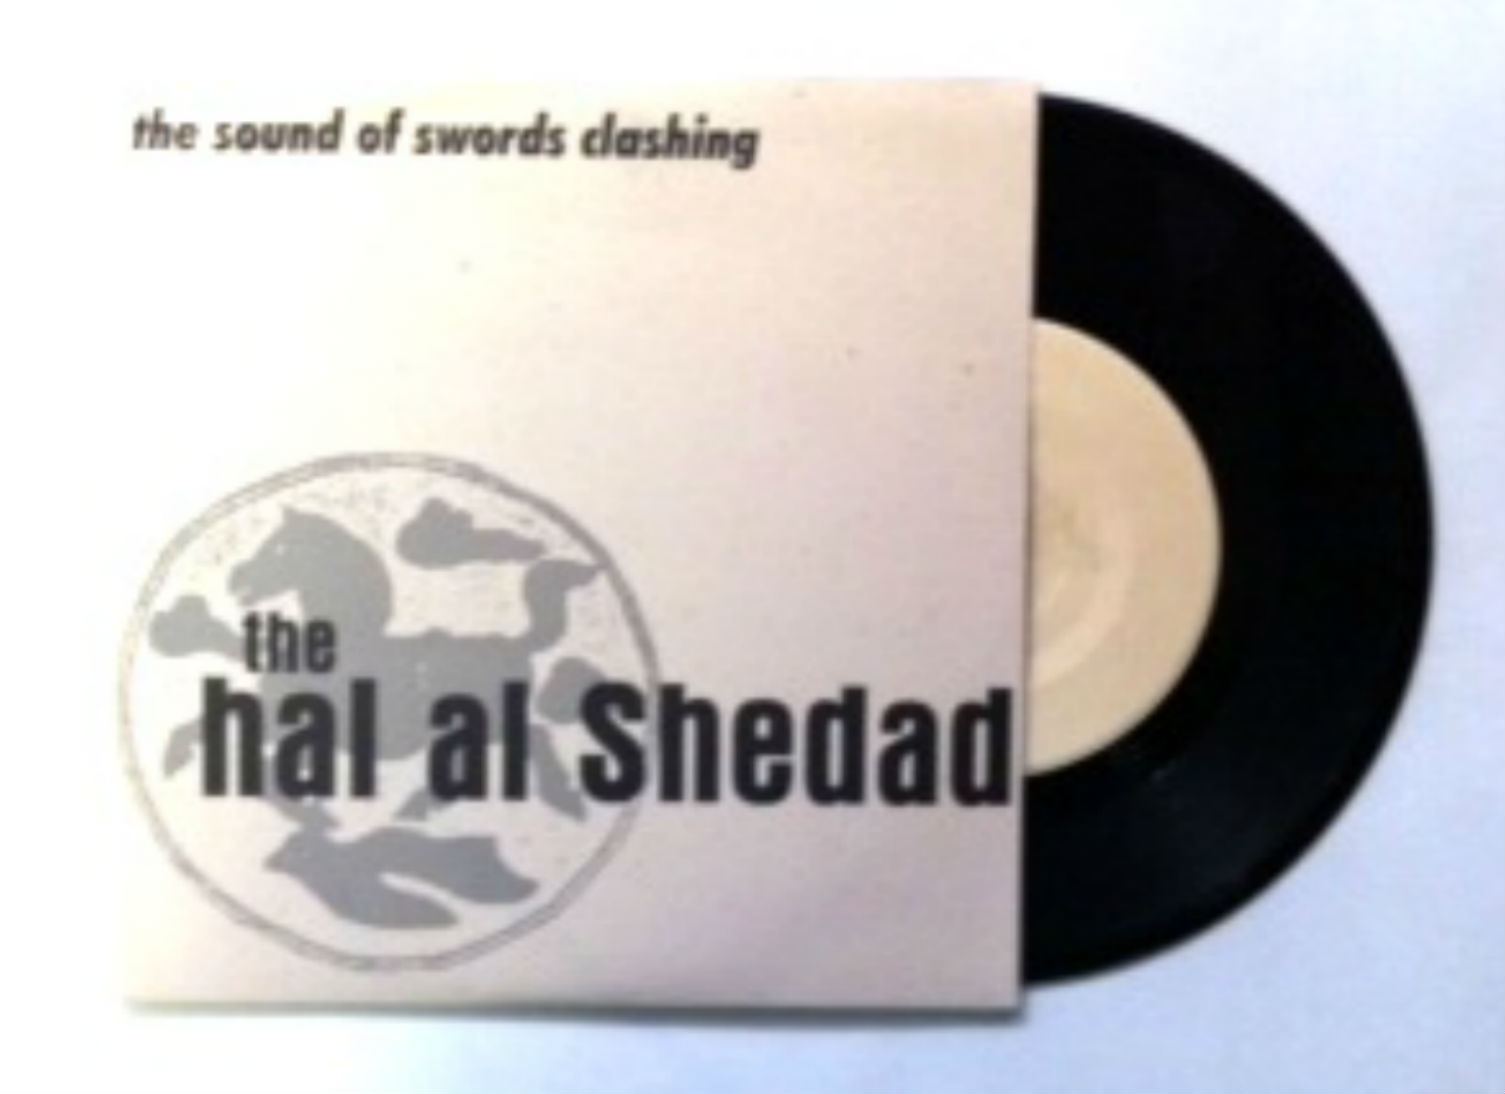 Hal Al Shedad / The Sound Of Swords Clashing